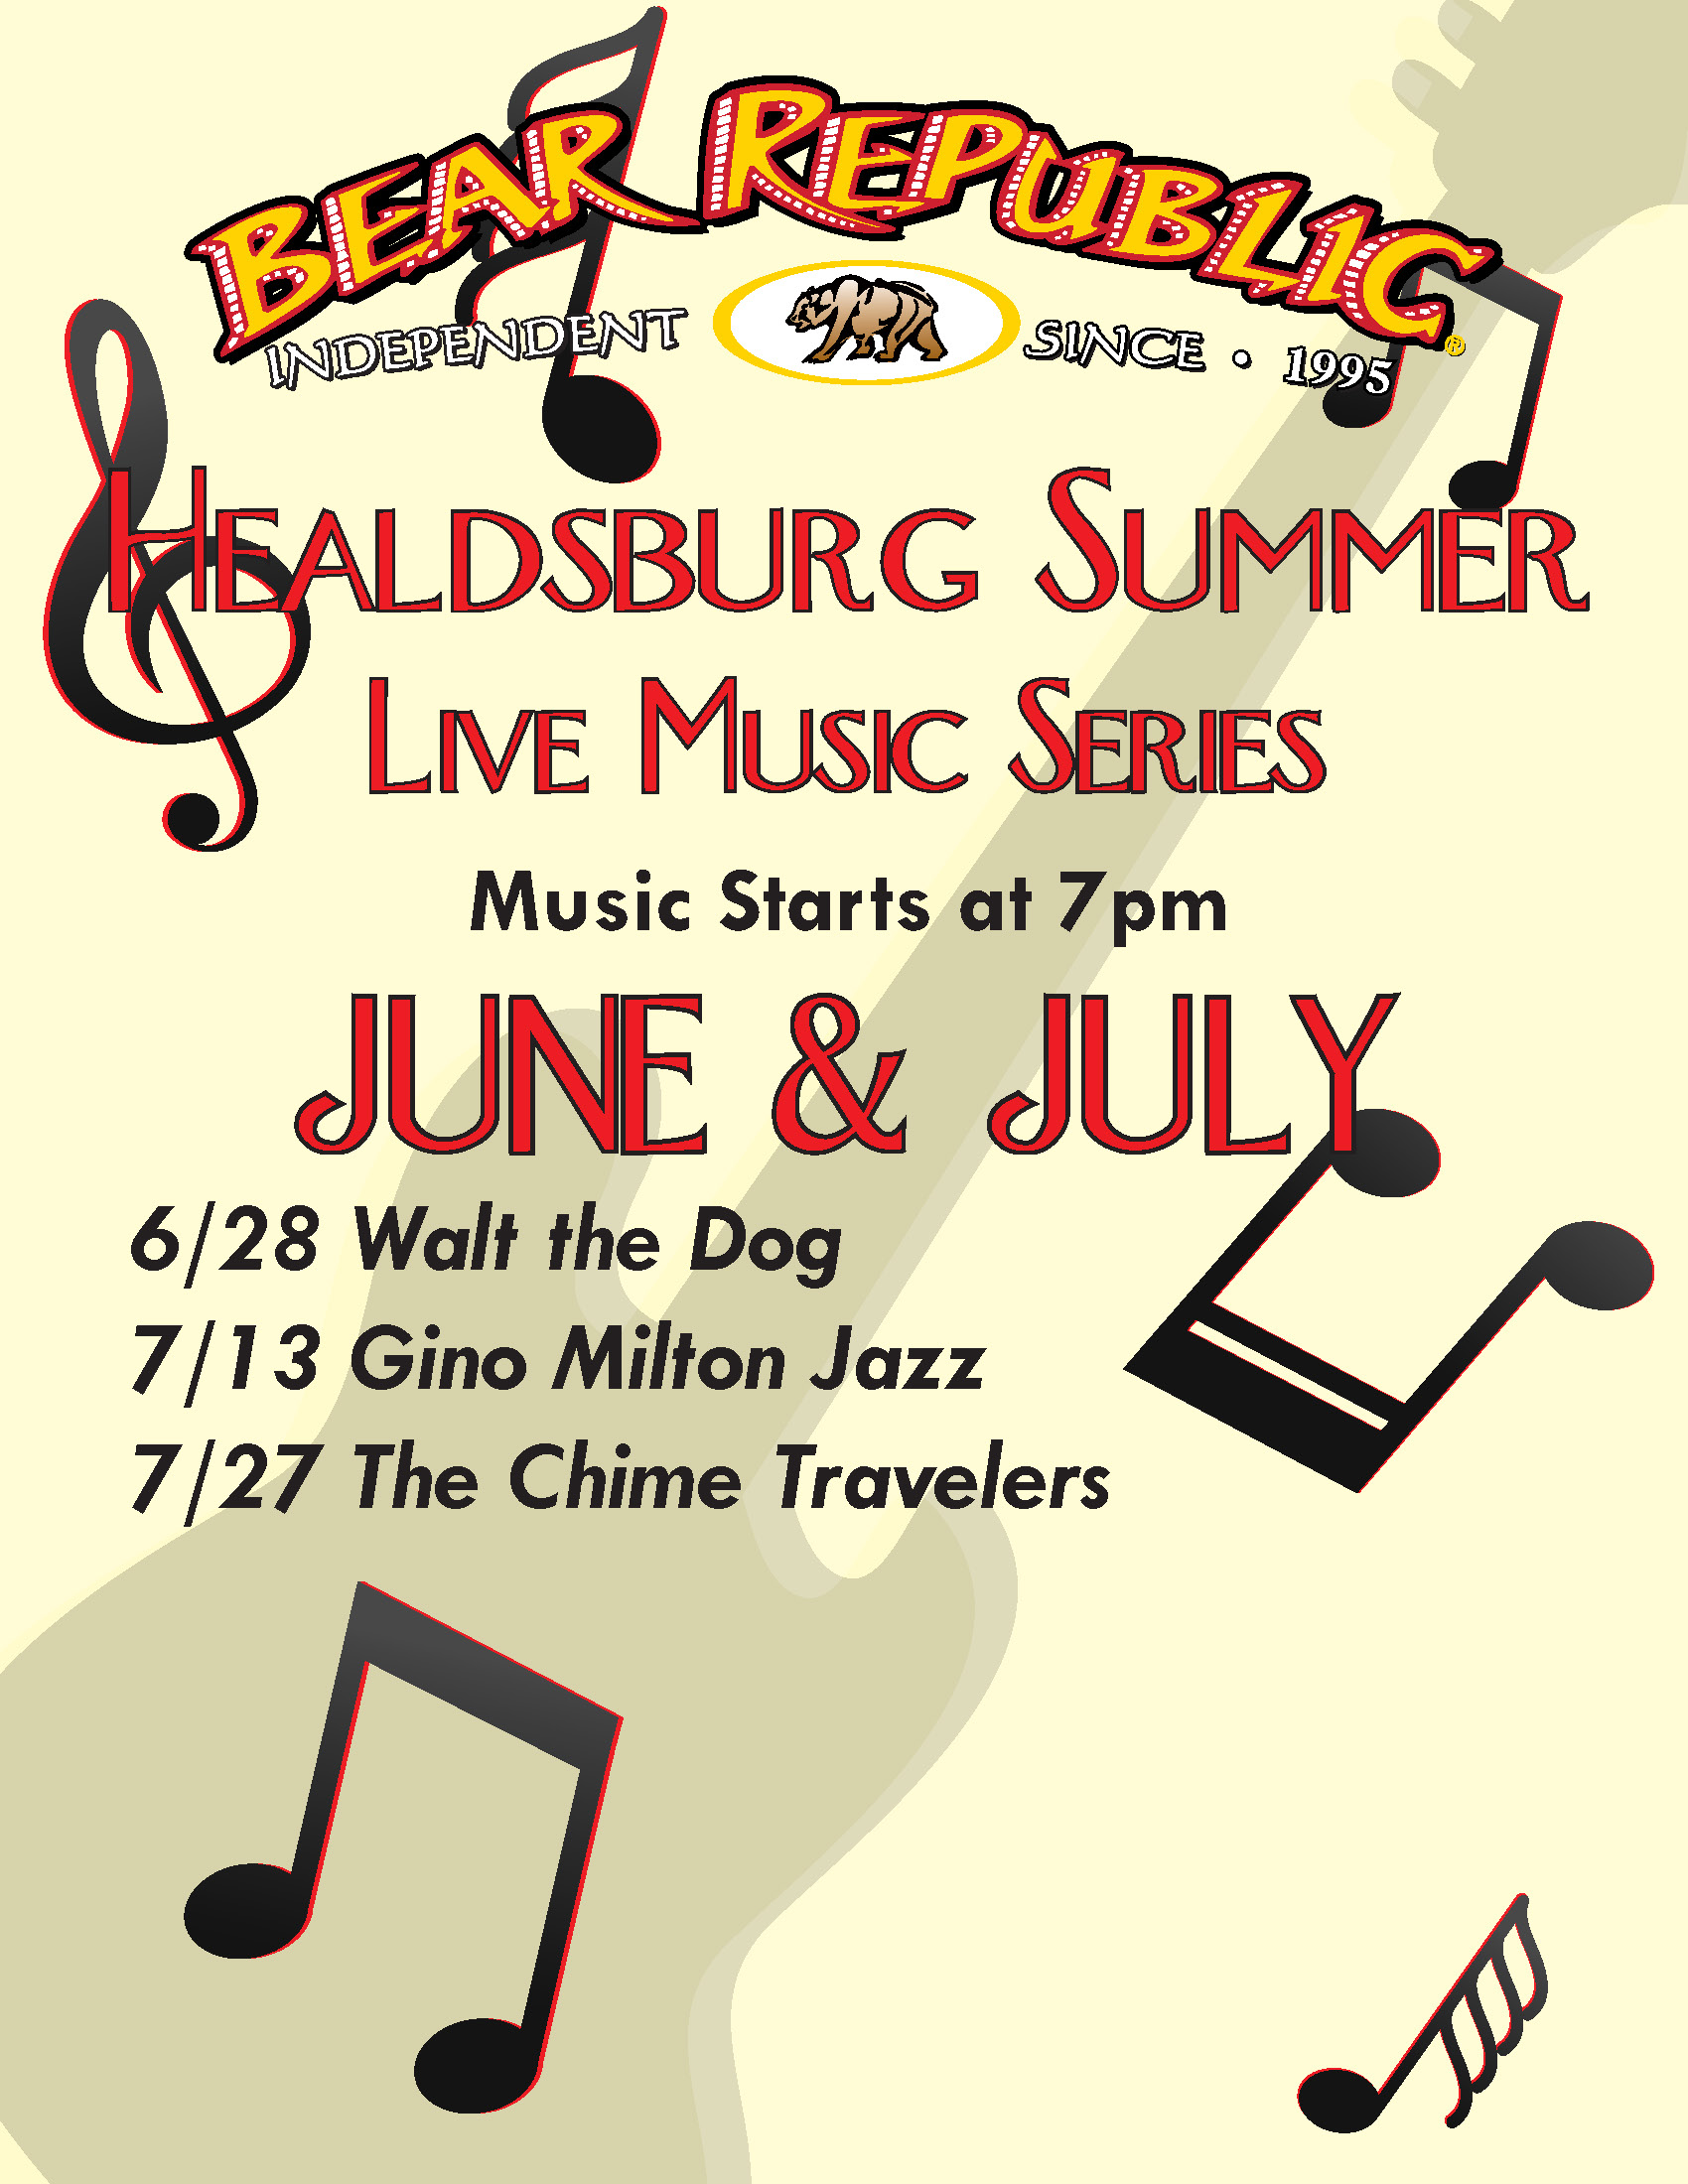 bear republic independent since 1995. Healdsburg summer live music series. music starts at 7 pm. june and july. 6/28 walt the dog. 7/13 gino milton jazz. 7/27 the chime travelers.